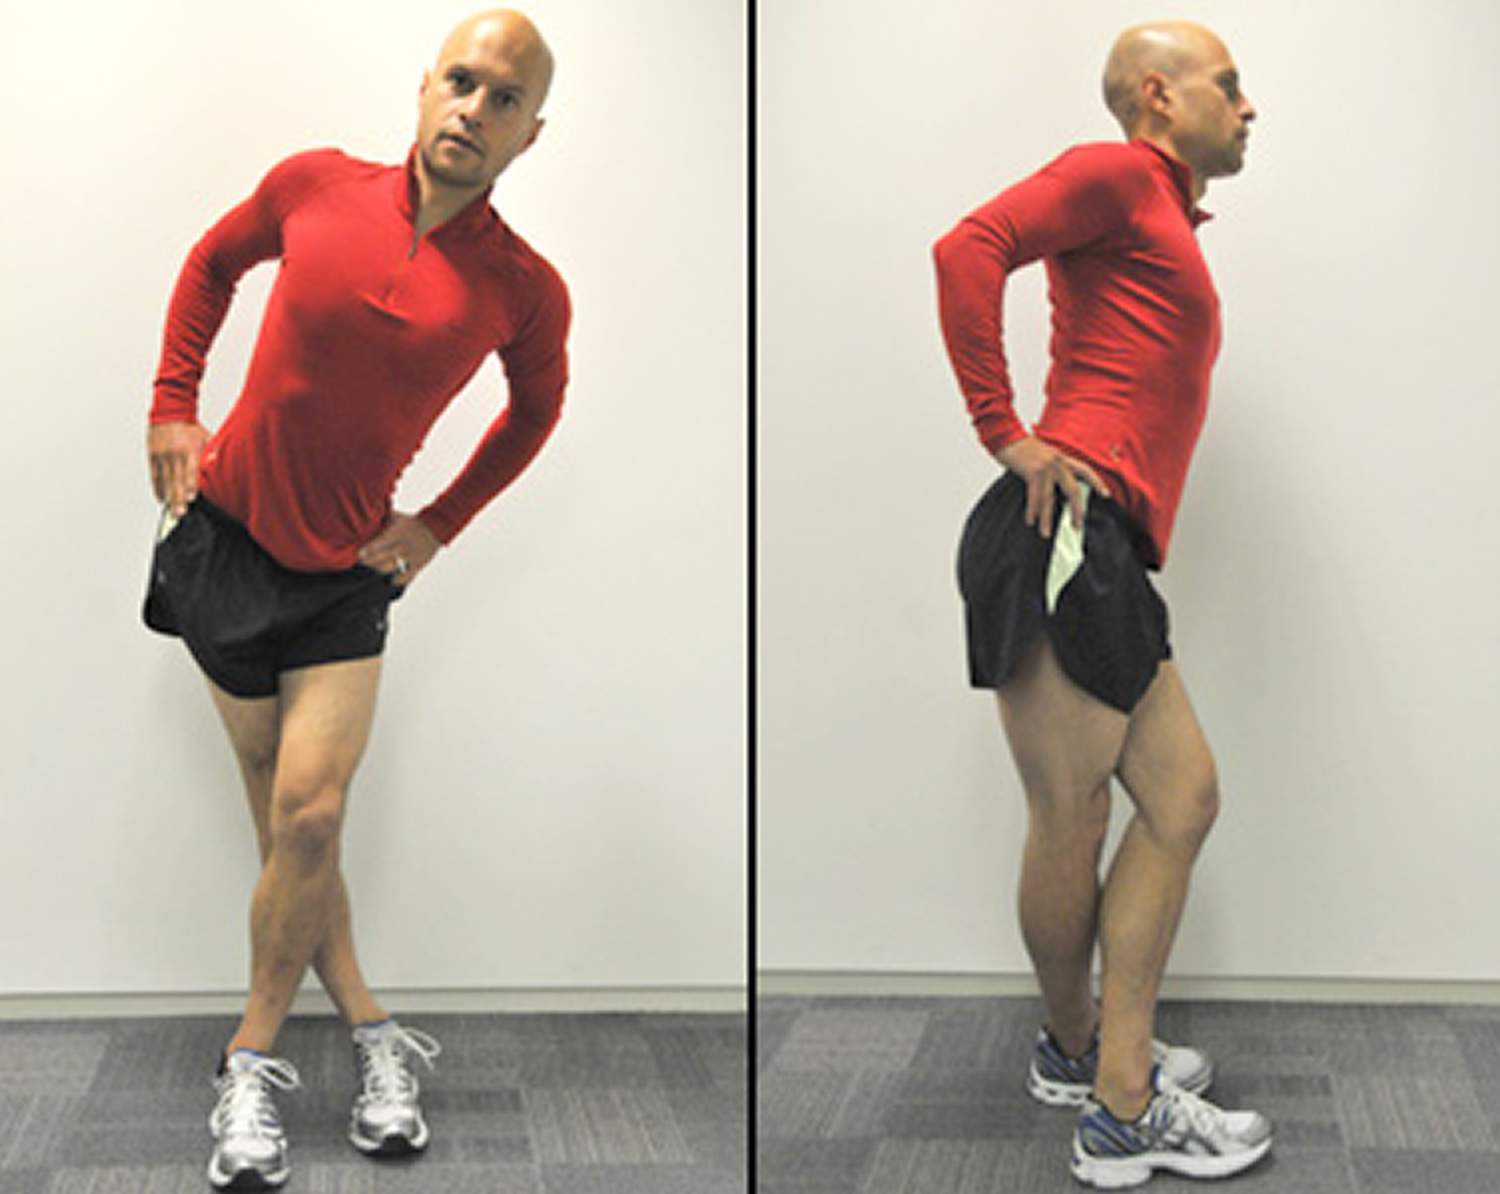 Iliotibial band stretch after running